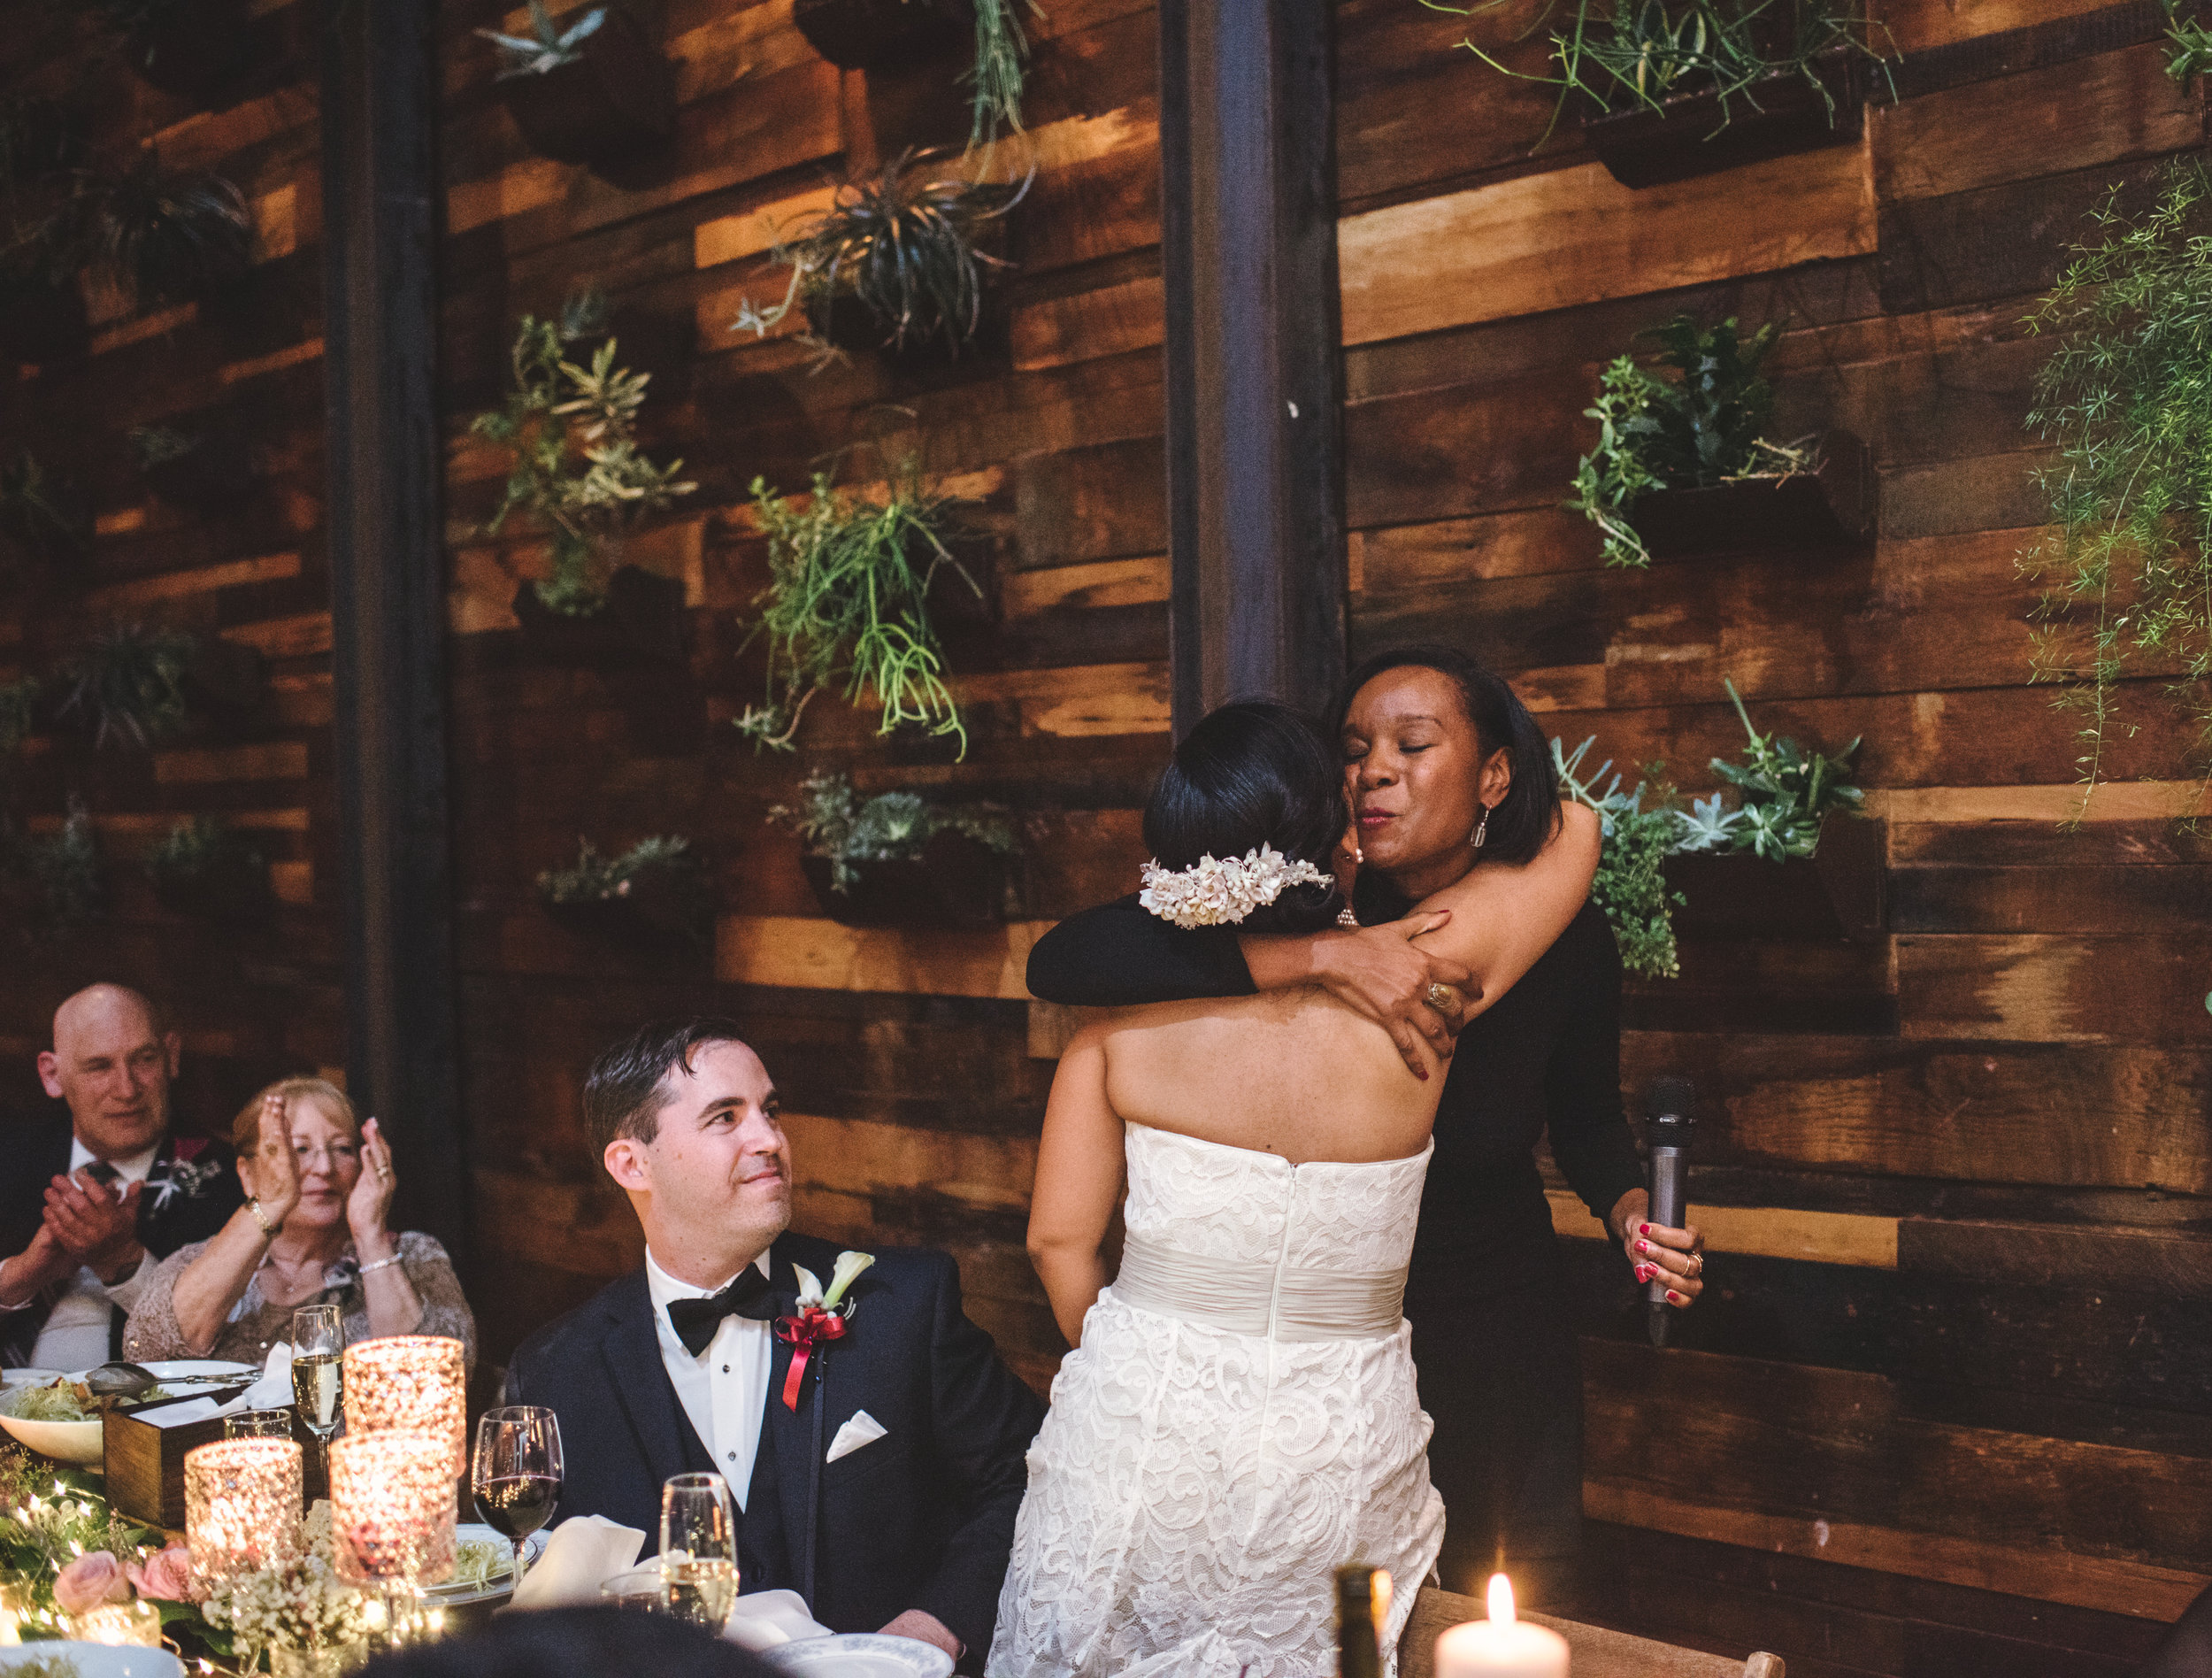 BROOKLYN WINERY WEDDING - TWOTWENTY by CHI-CHI AGBIM-394.jpg